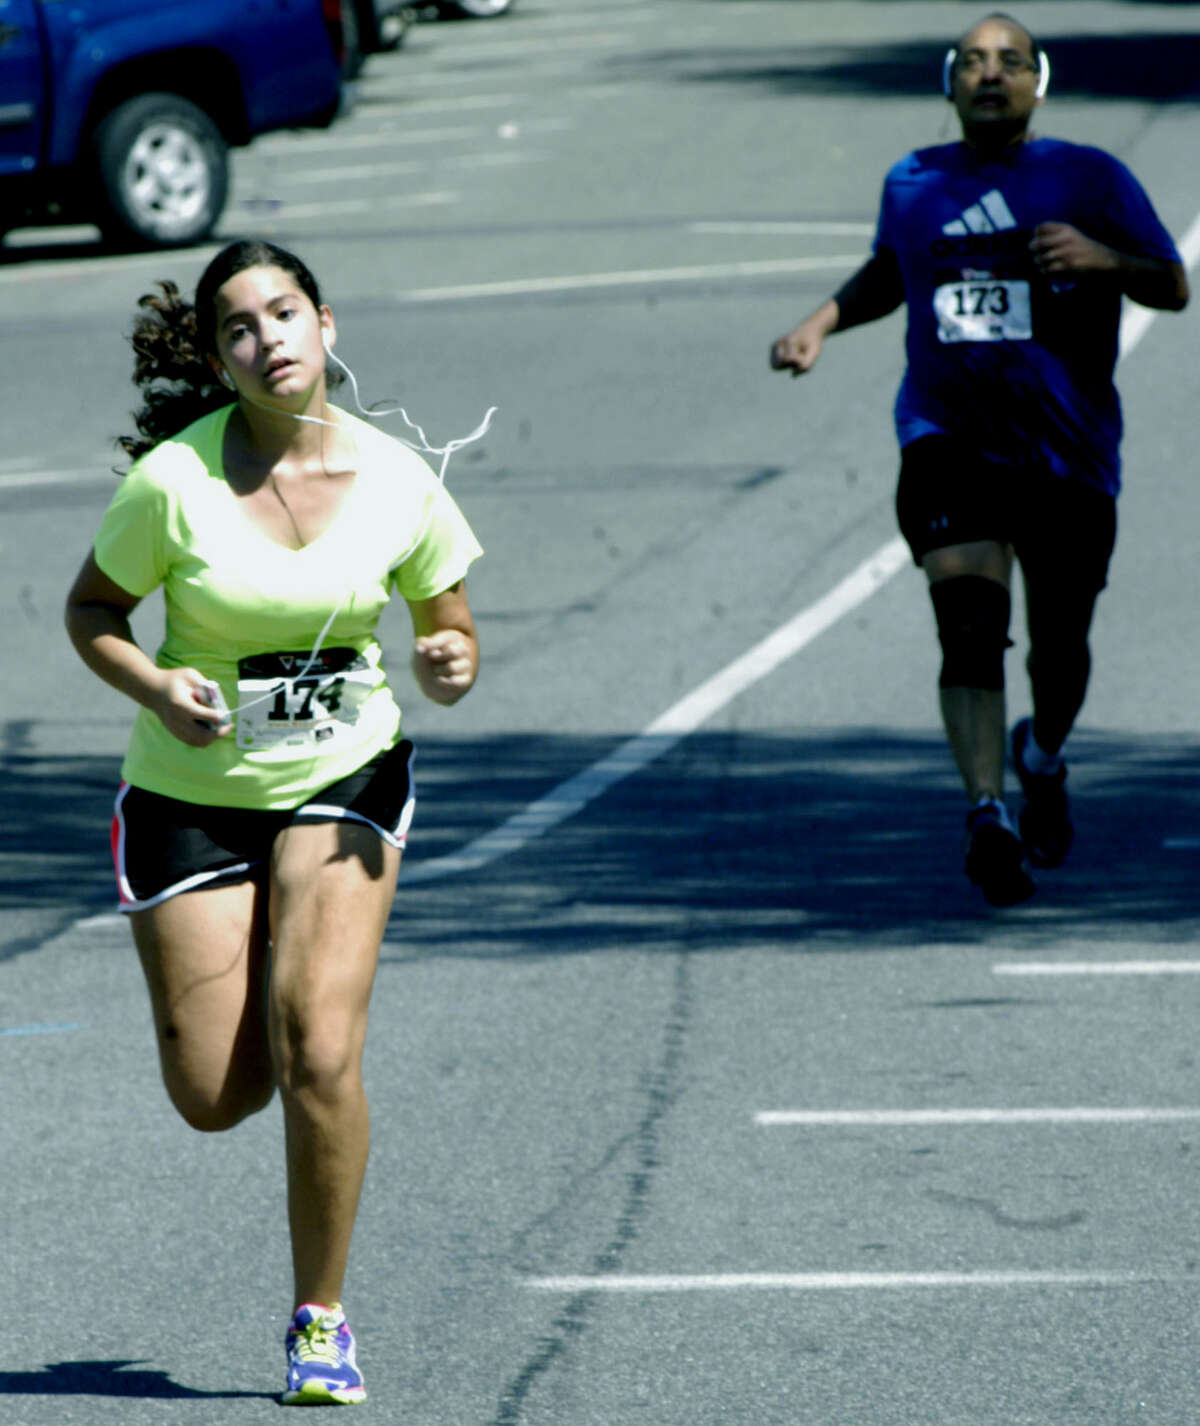 Christina Khalil, 13, of New Miford engages in a spirited battle with Magdi Khalil, 47, of New Milford during the stretch run for the 46th annual New Milford 8-mile road race July 27, 2013